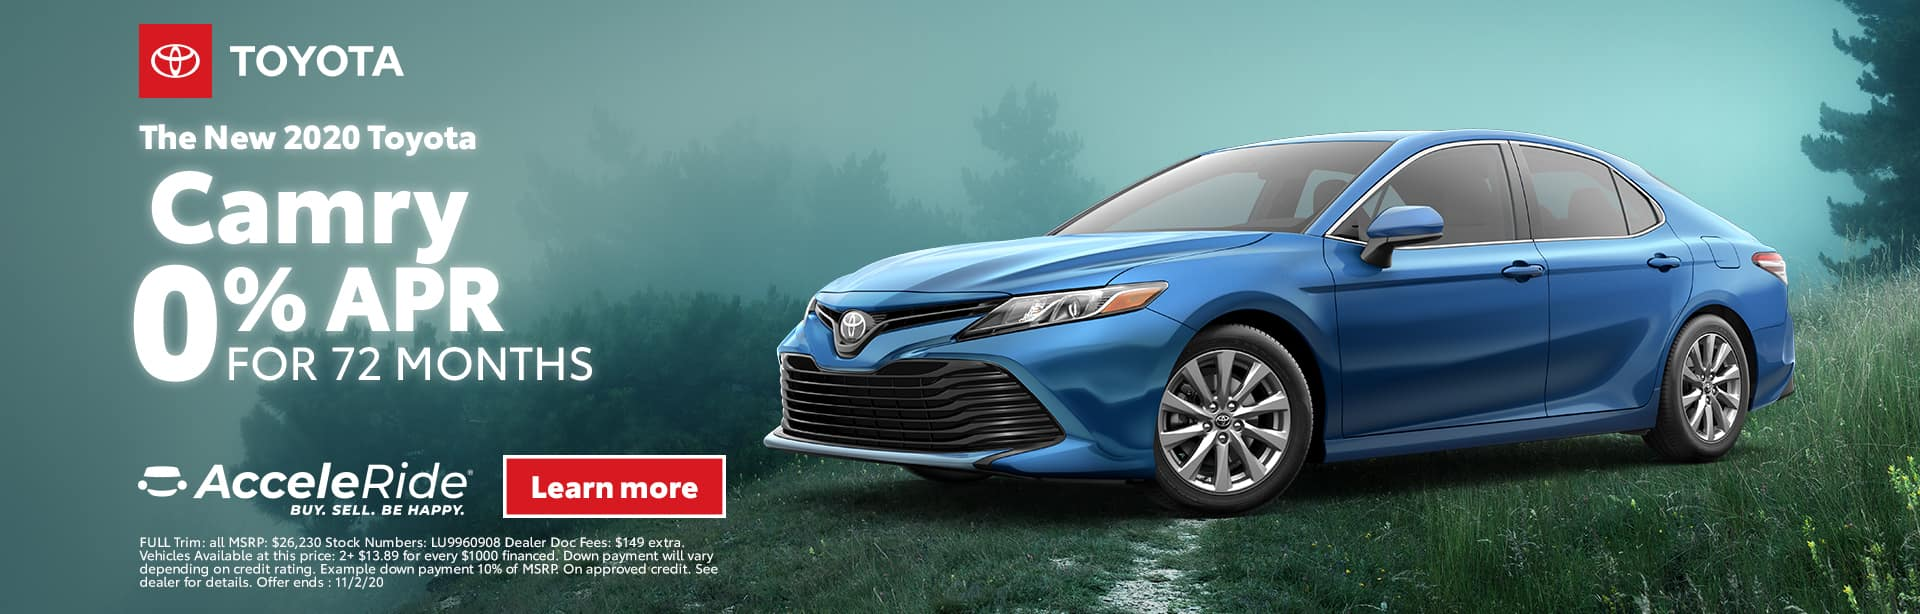 20OCT_Toyota_Camry_WB_1920x614